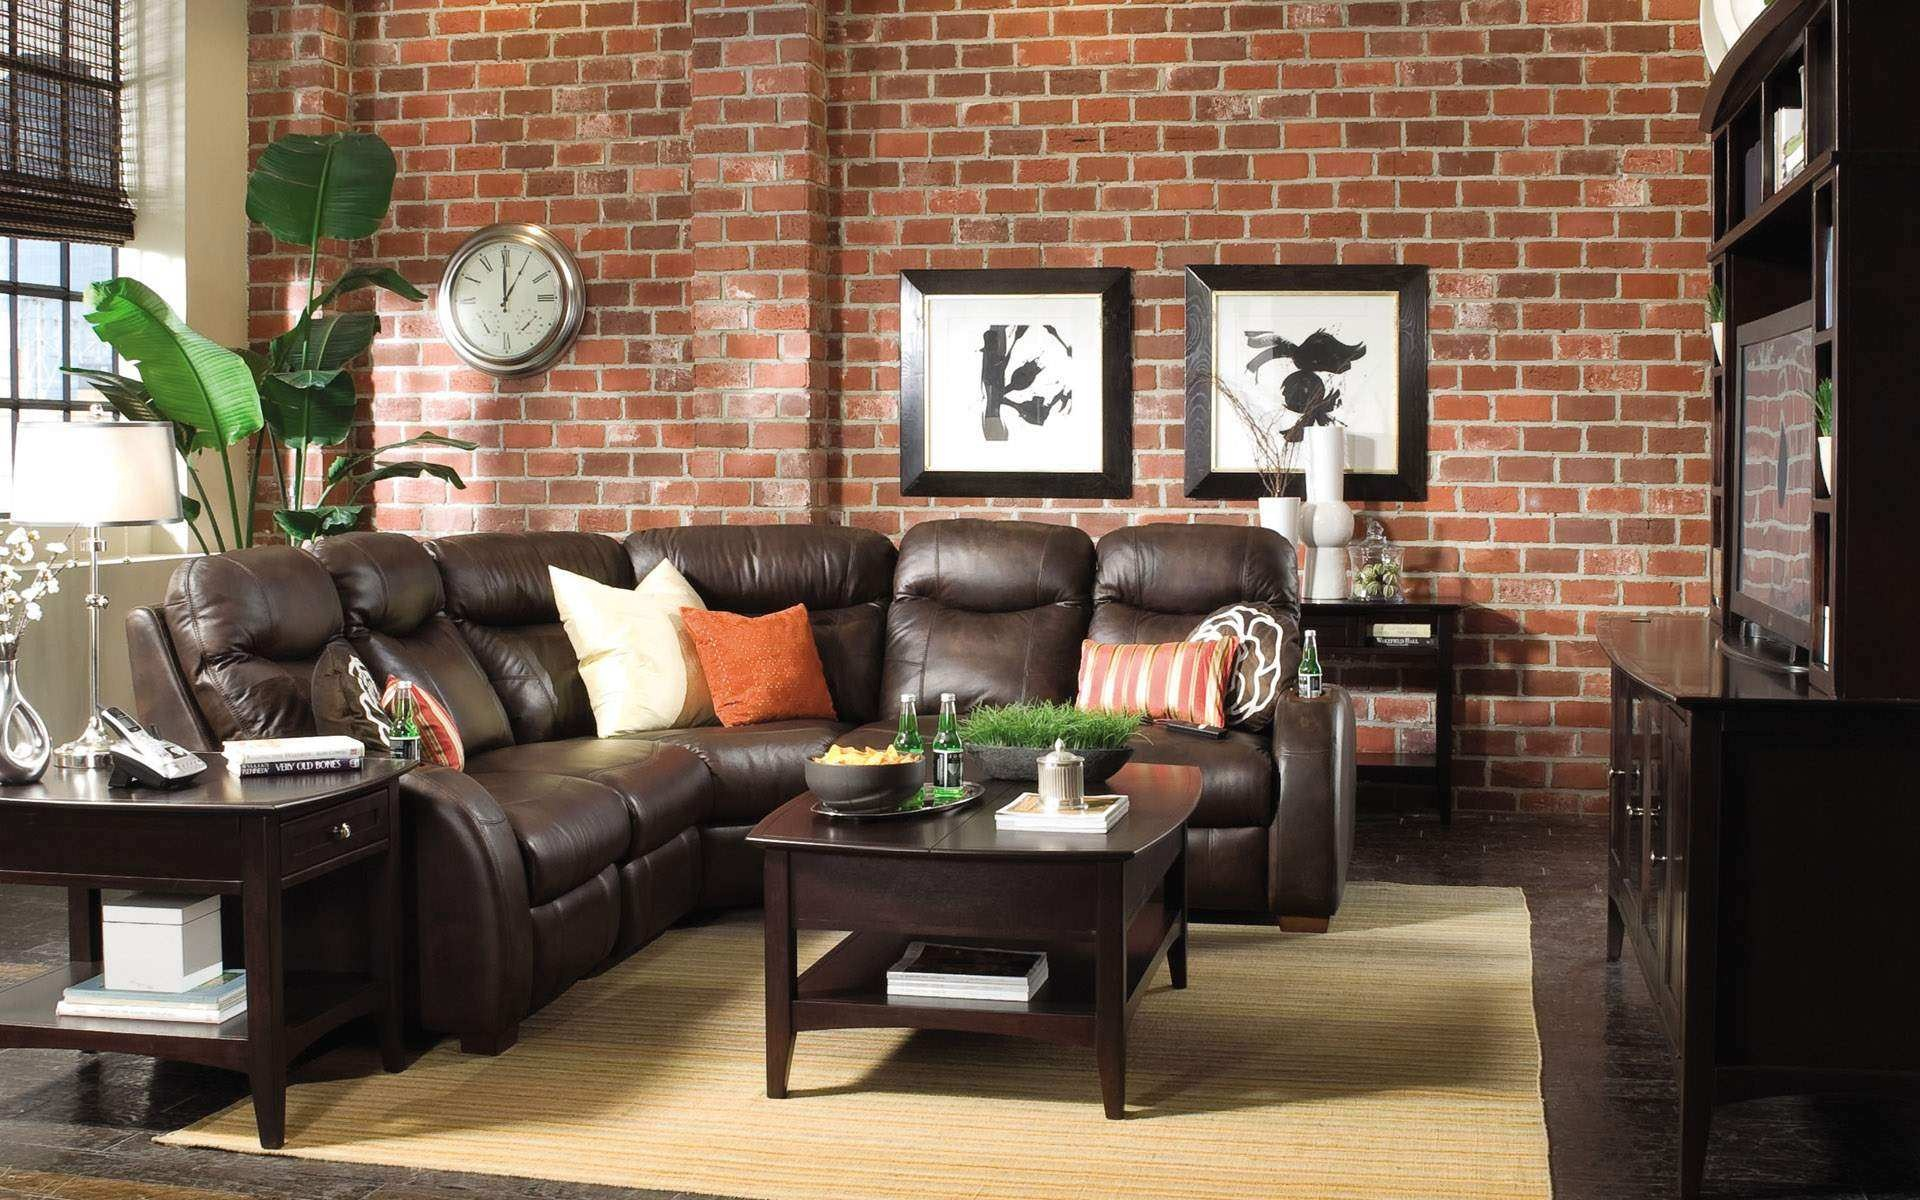 amazing-exposed-brick-wall-with-black-for-living-room-decoration-two-classic-black-wooden-framed-photos-artificial-plants-rounded-clock-on-the-exposed-bric_01